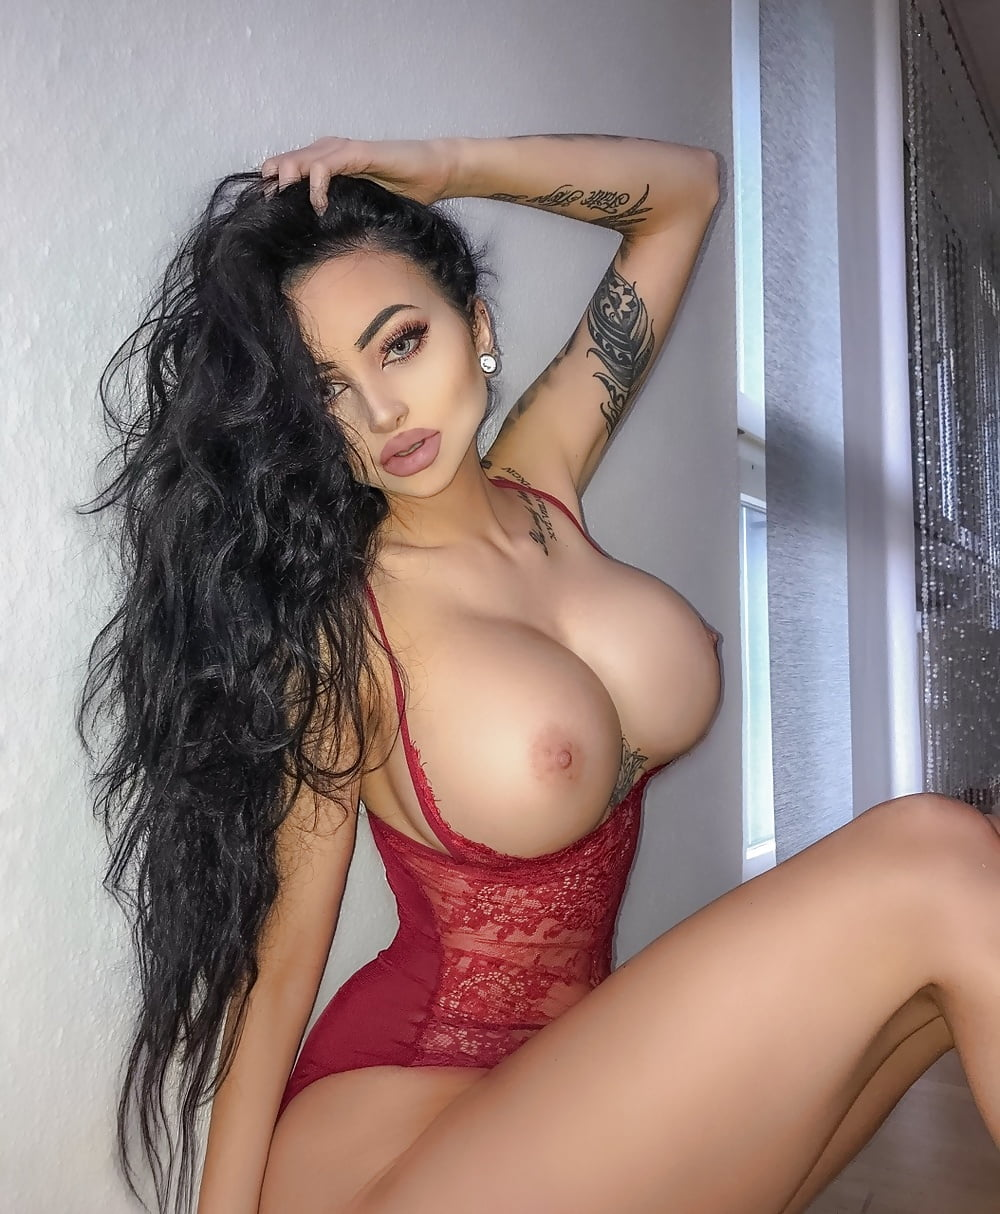 Tits Celine Centino nude (47 pictures) Boobs, YouTube, butt